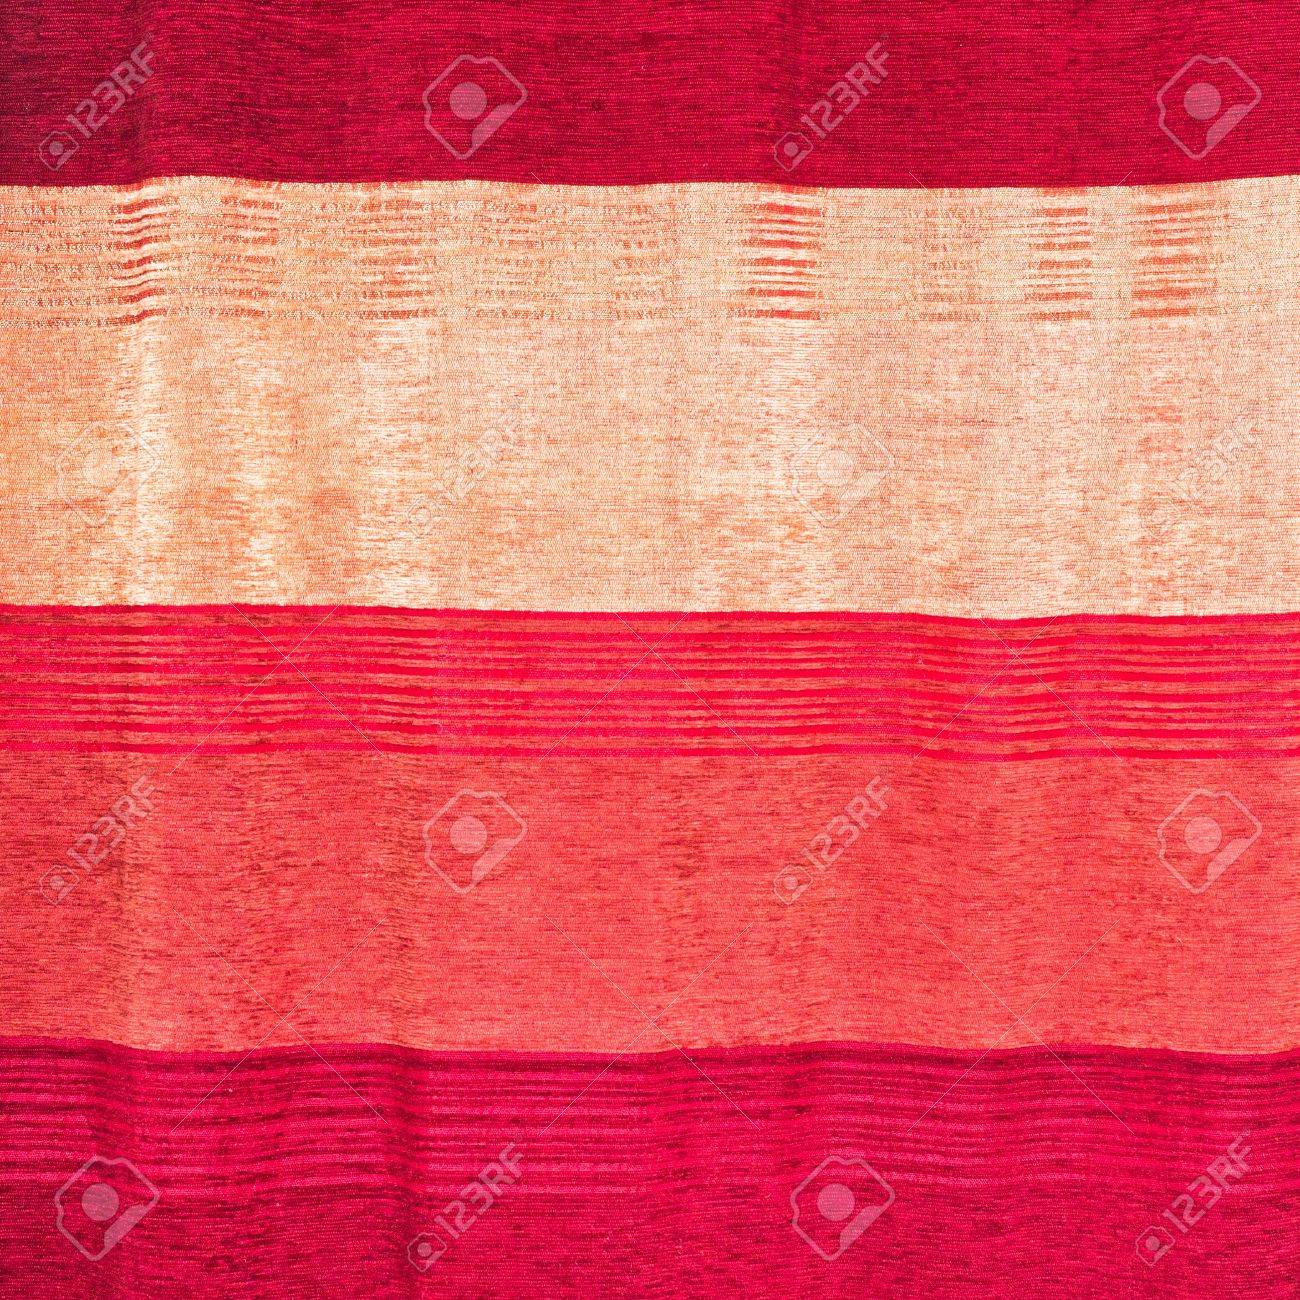 Vividly colorful moroccan cloth as a textured background image Stock Photo - 15761635